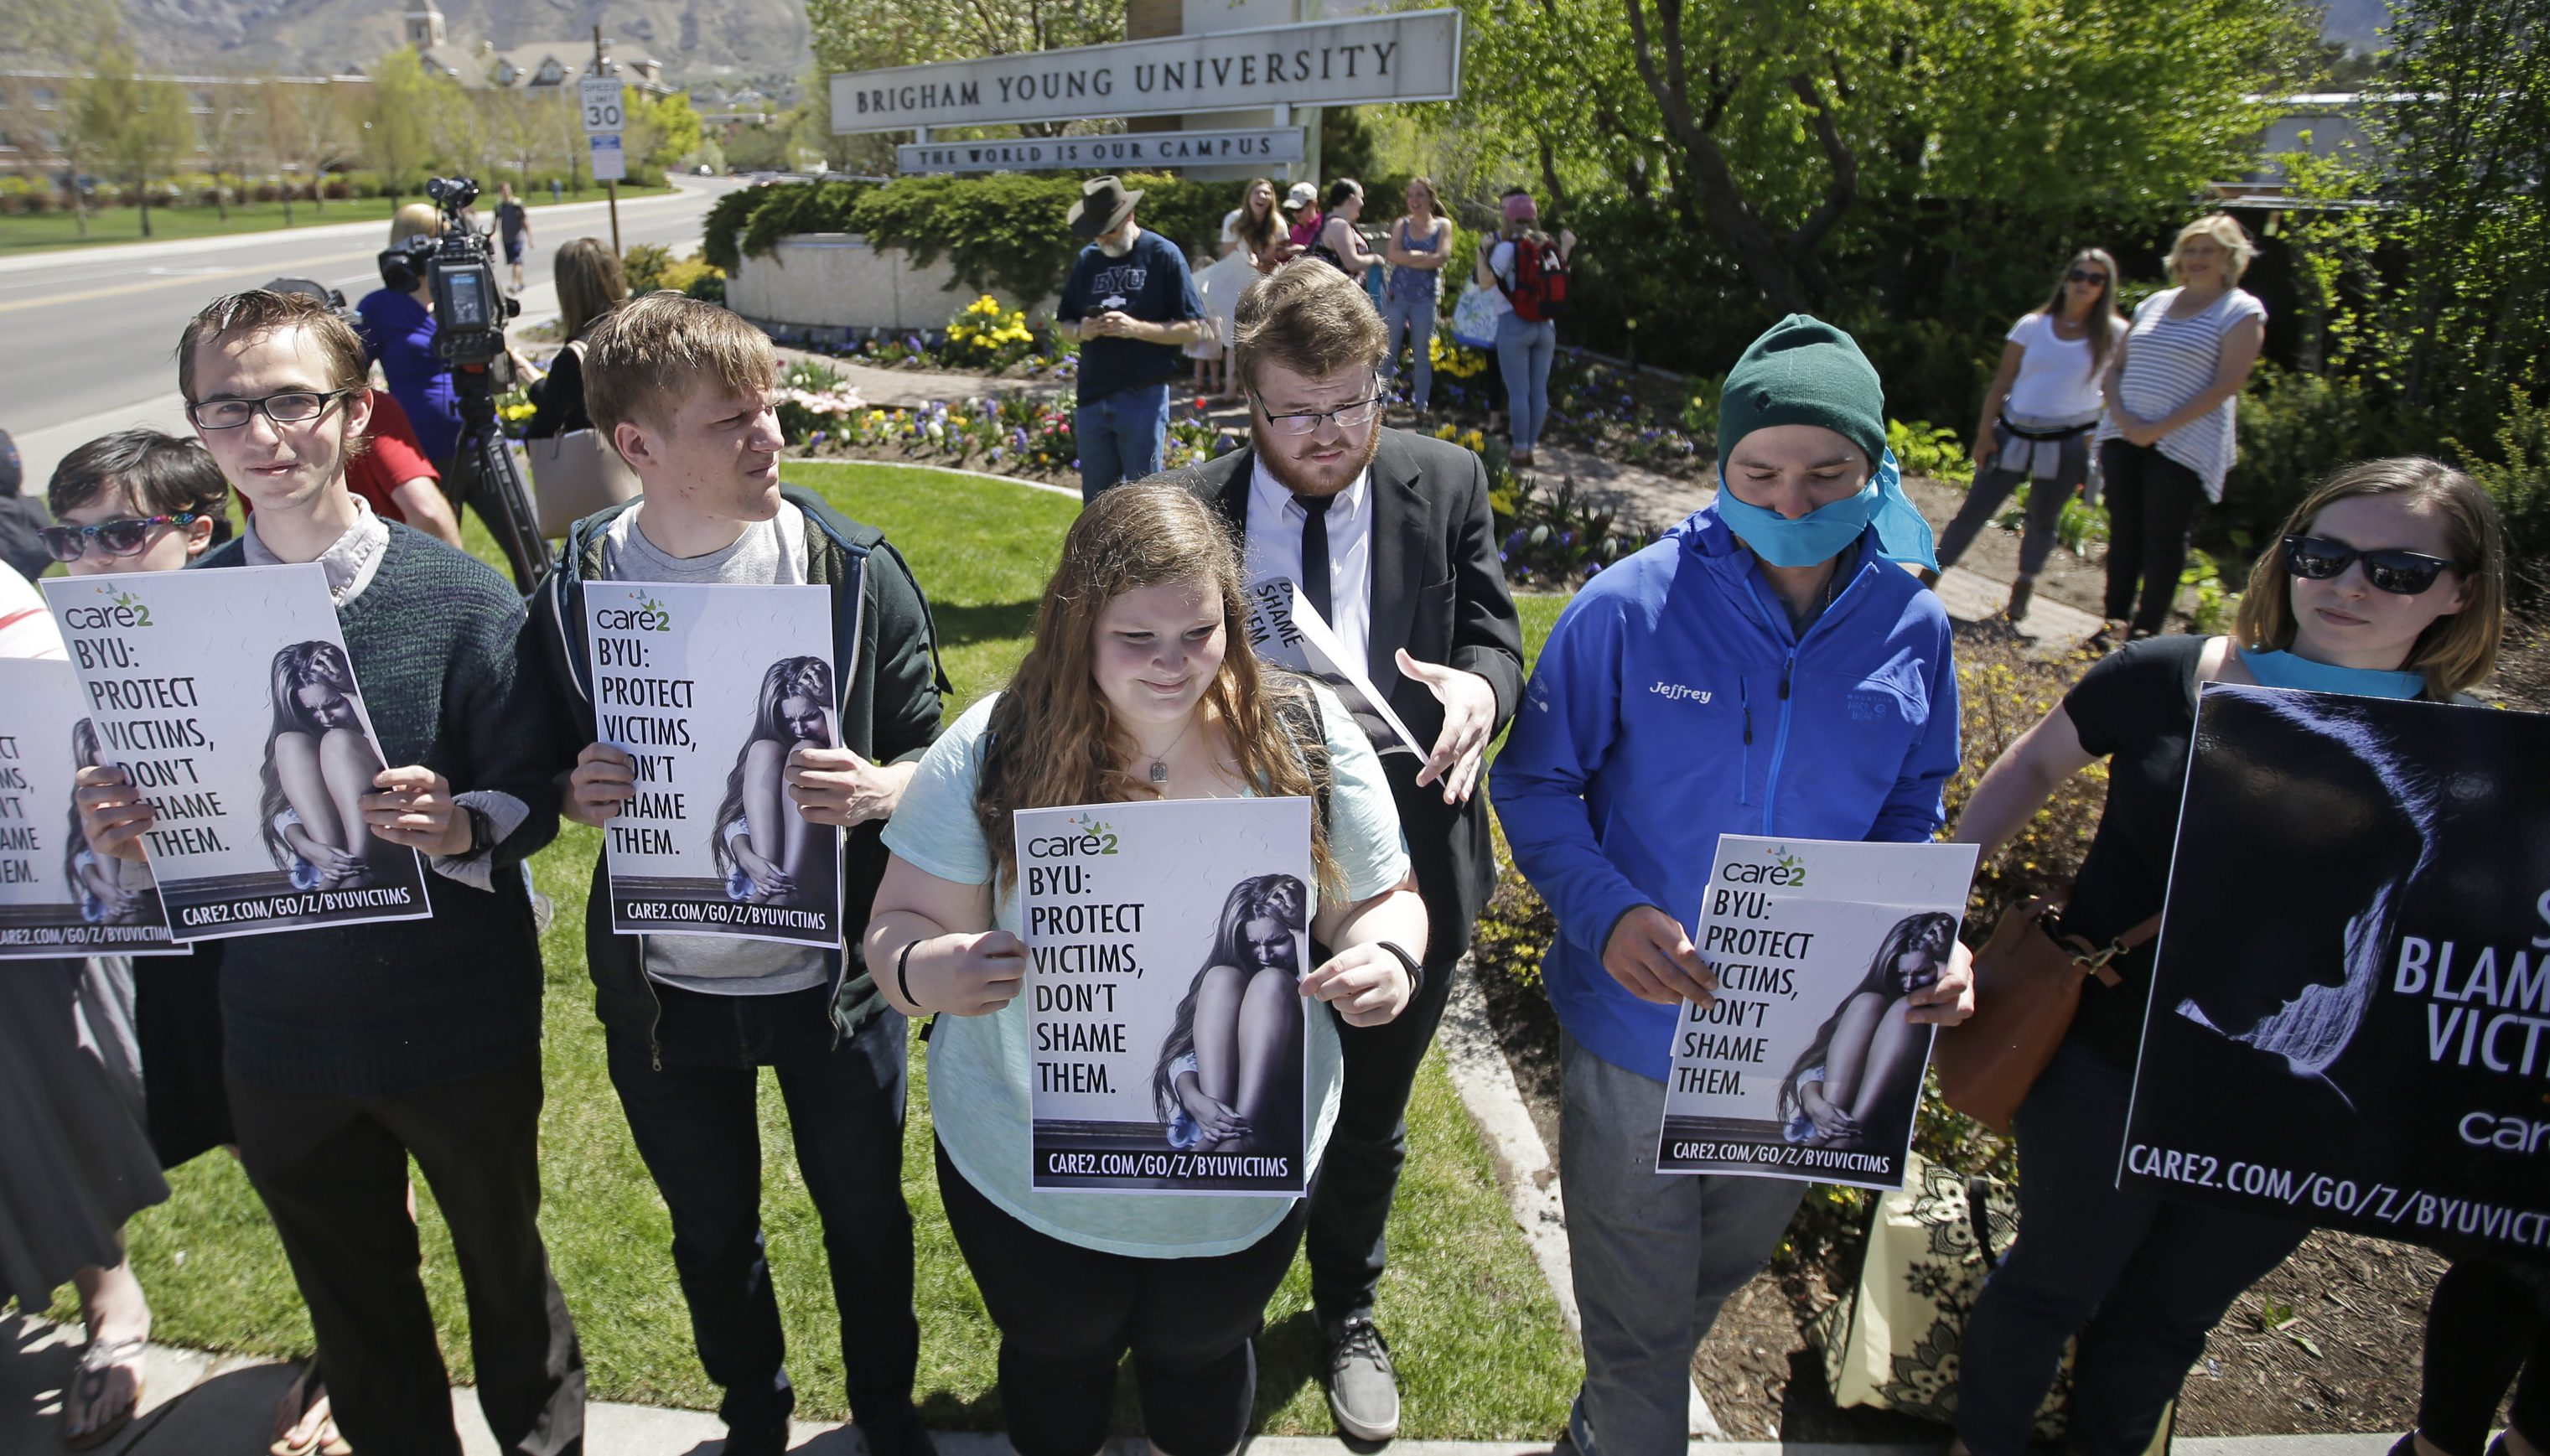 FILE - This April 20, 2016, file photo, protesters stand in solidarity with rape victims on the campus of Brigham Young University during a sexual assault awareness demonstration, in Provo, Utah. BYU announced Wednesday, Oct. 26, 2016, that students who report sexual assault will no longer be investigated for possible violations of the Mormon-owned school's strict honor code that bans such things as alcohol use. (AP Photo/Rick Bowmer, File)